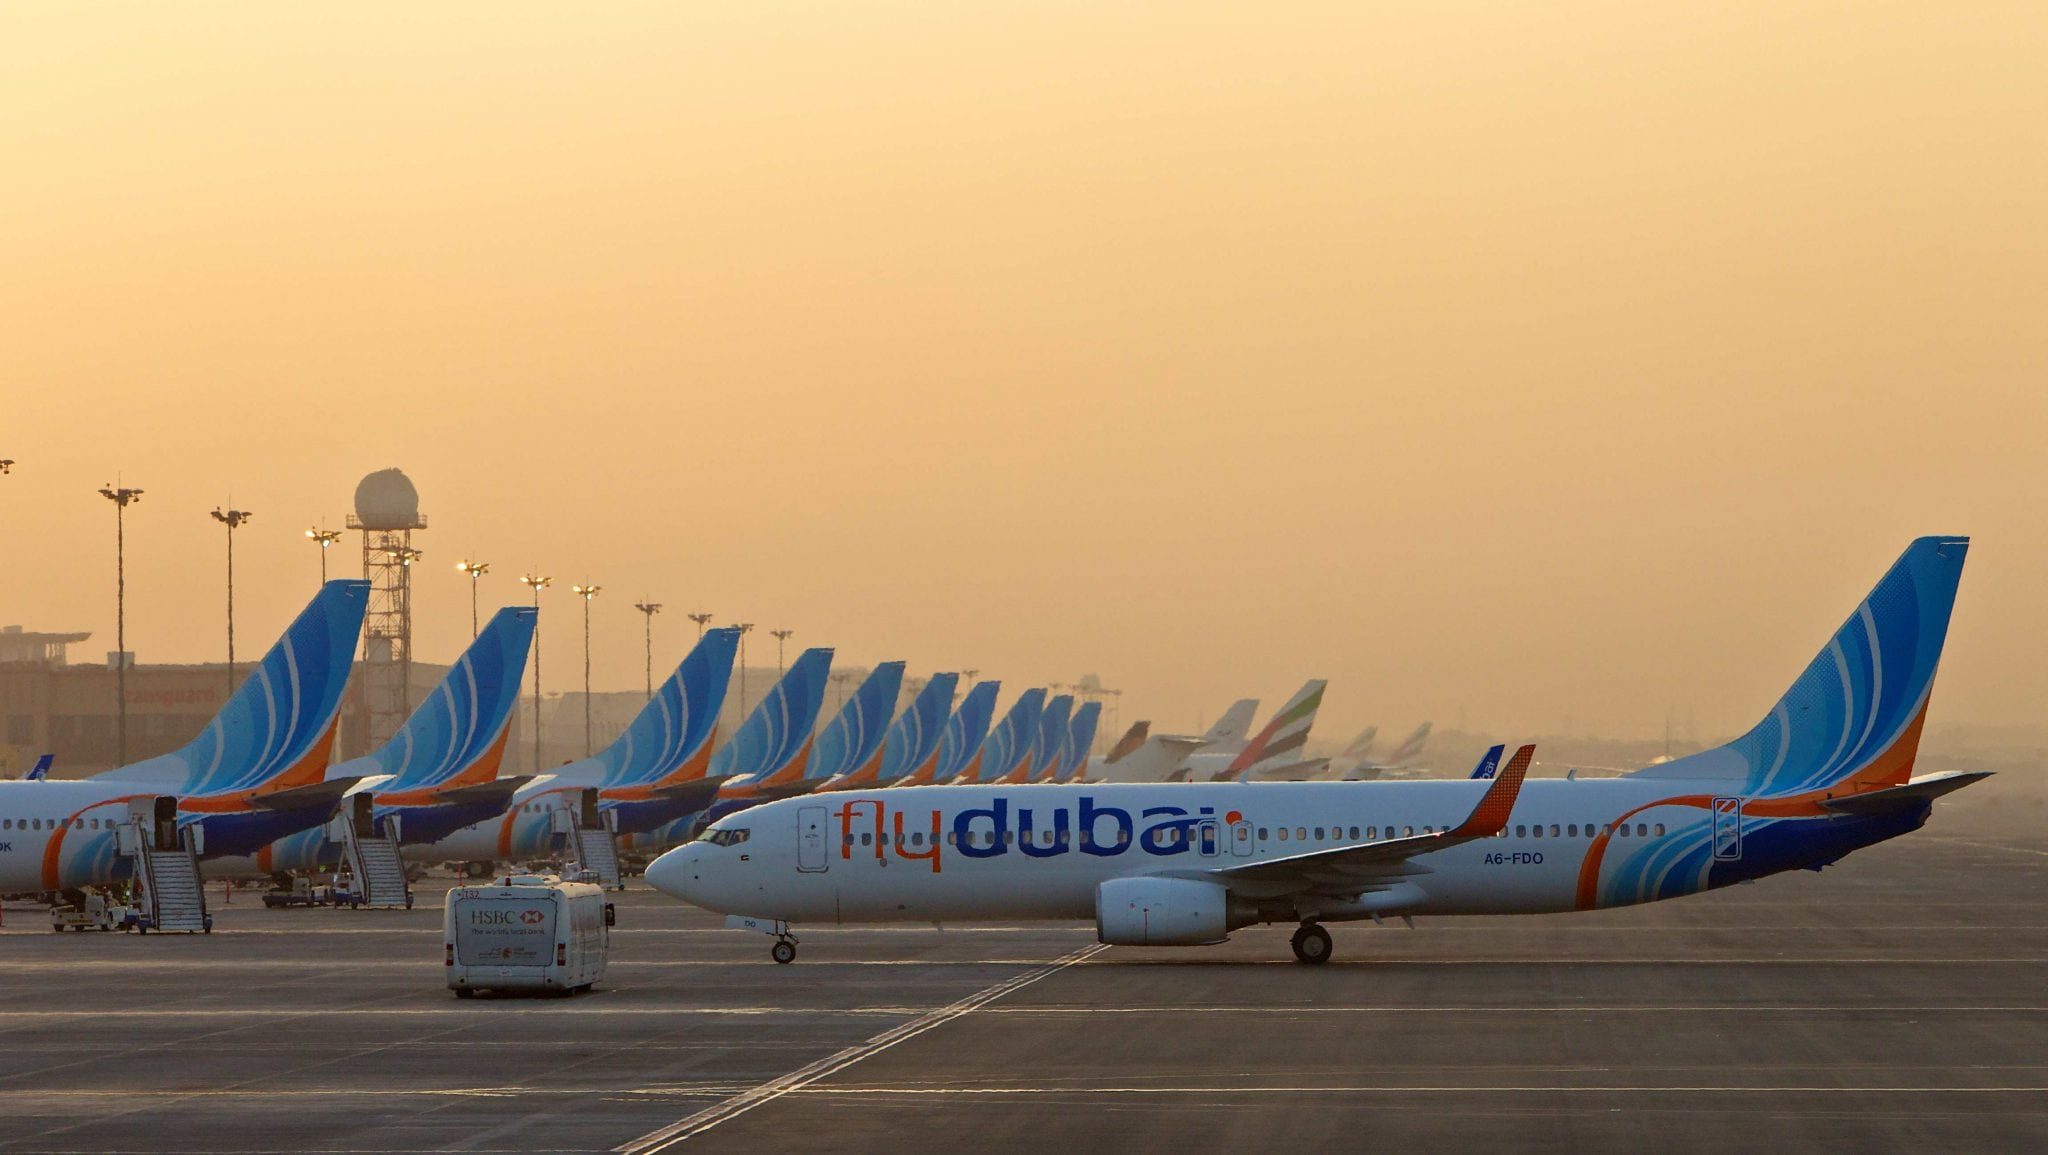 flydubai is looking to incorporate Rockwell Collins avionics into its fleet in coming years